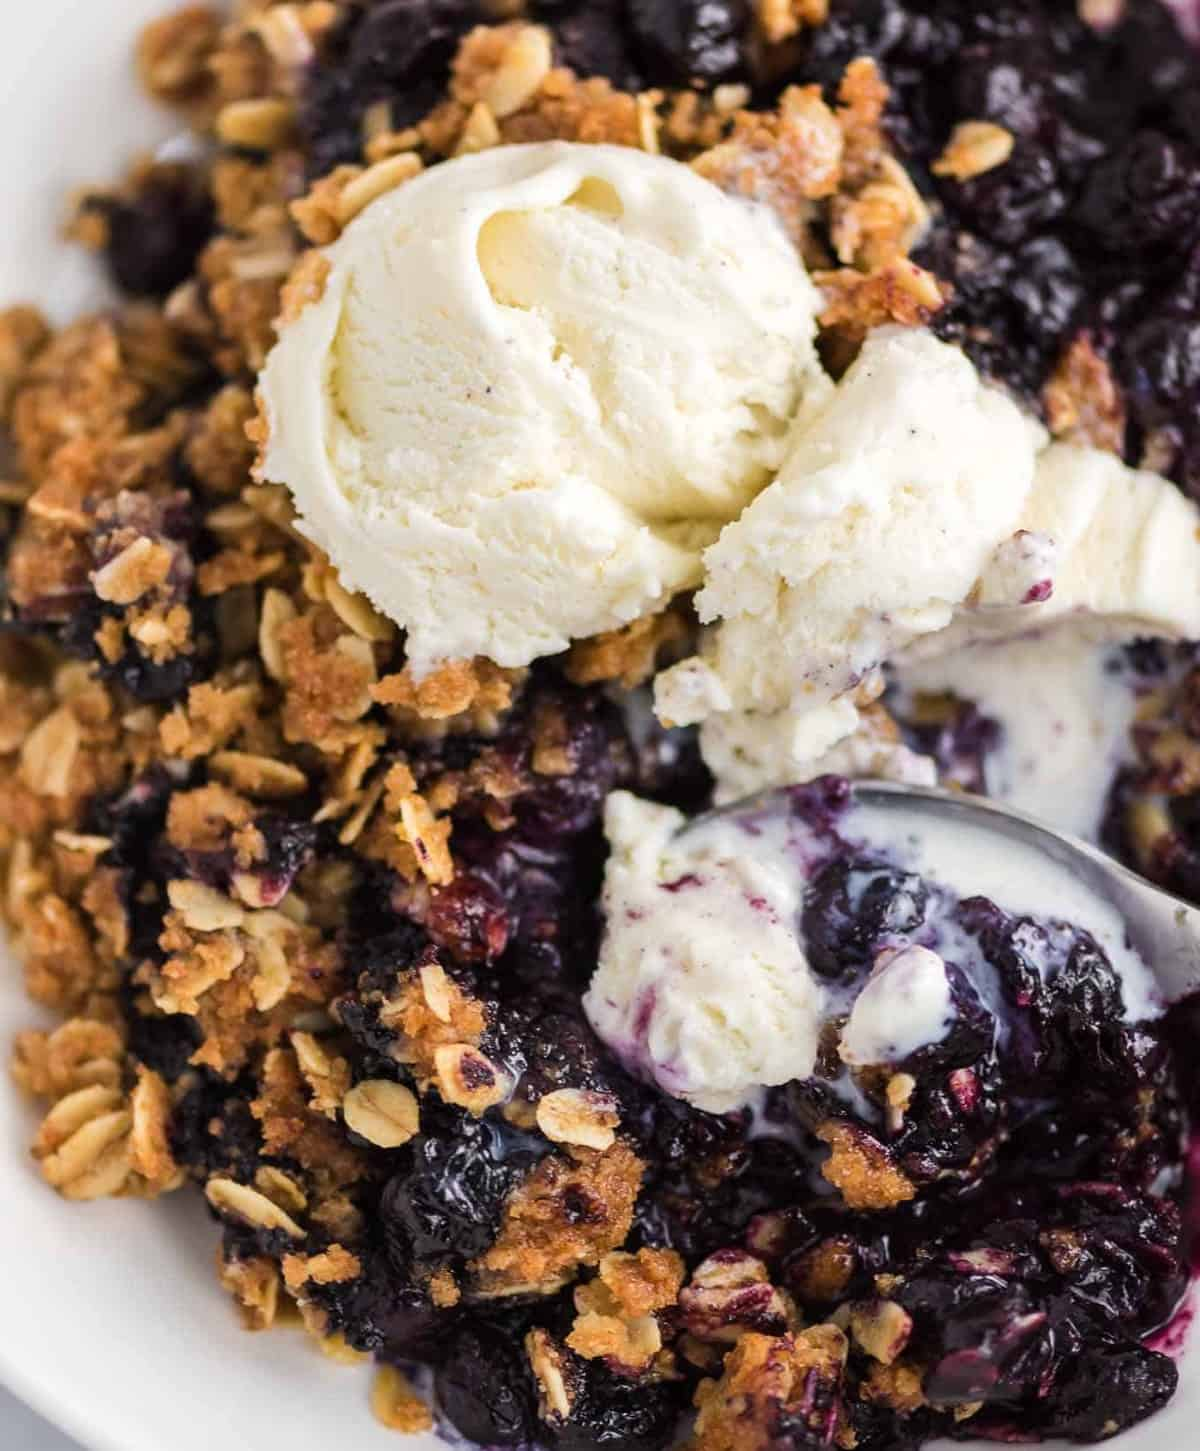 a silver spoon taking a bite of blueberry crisp and ice cream